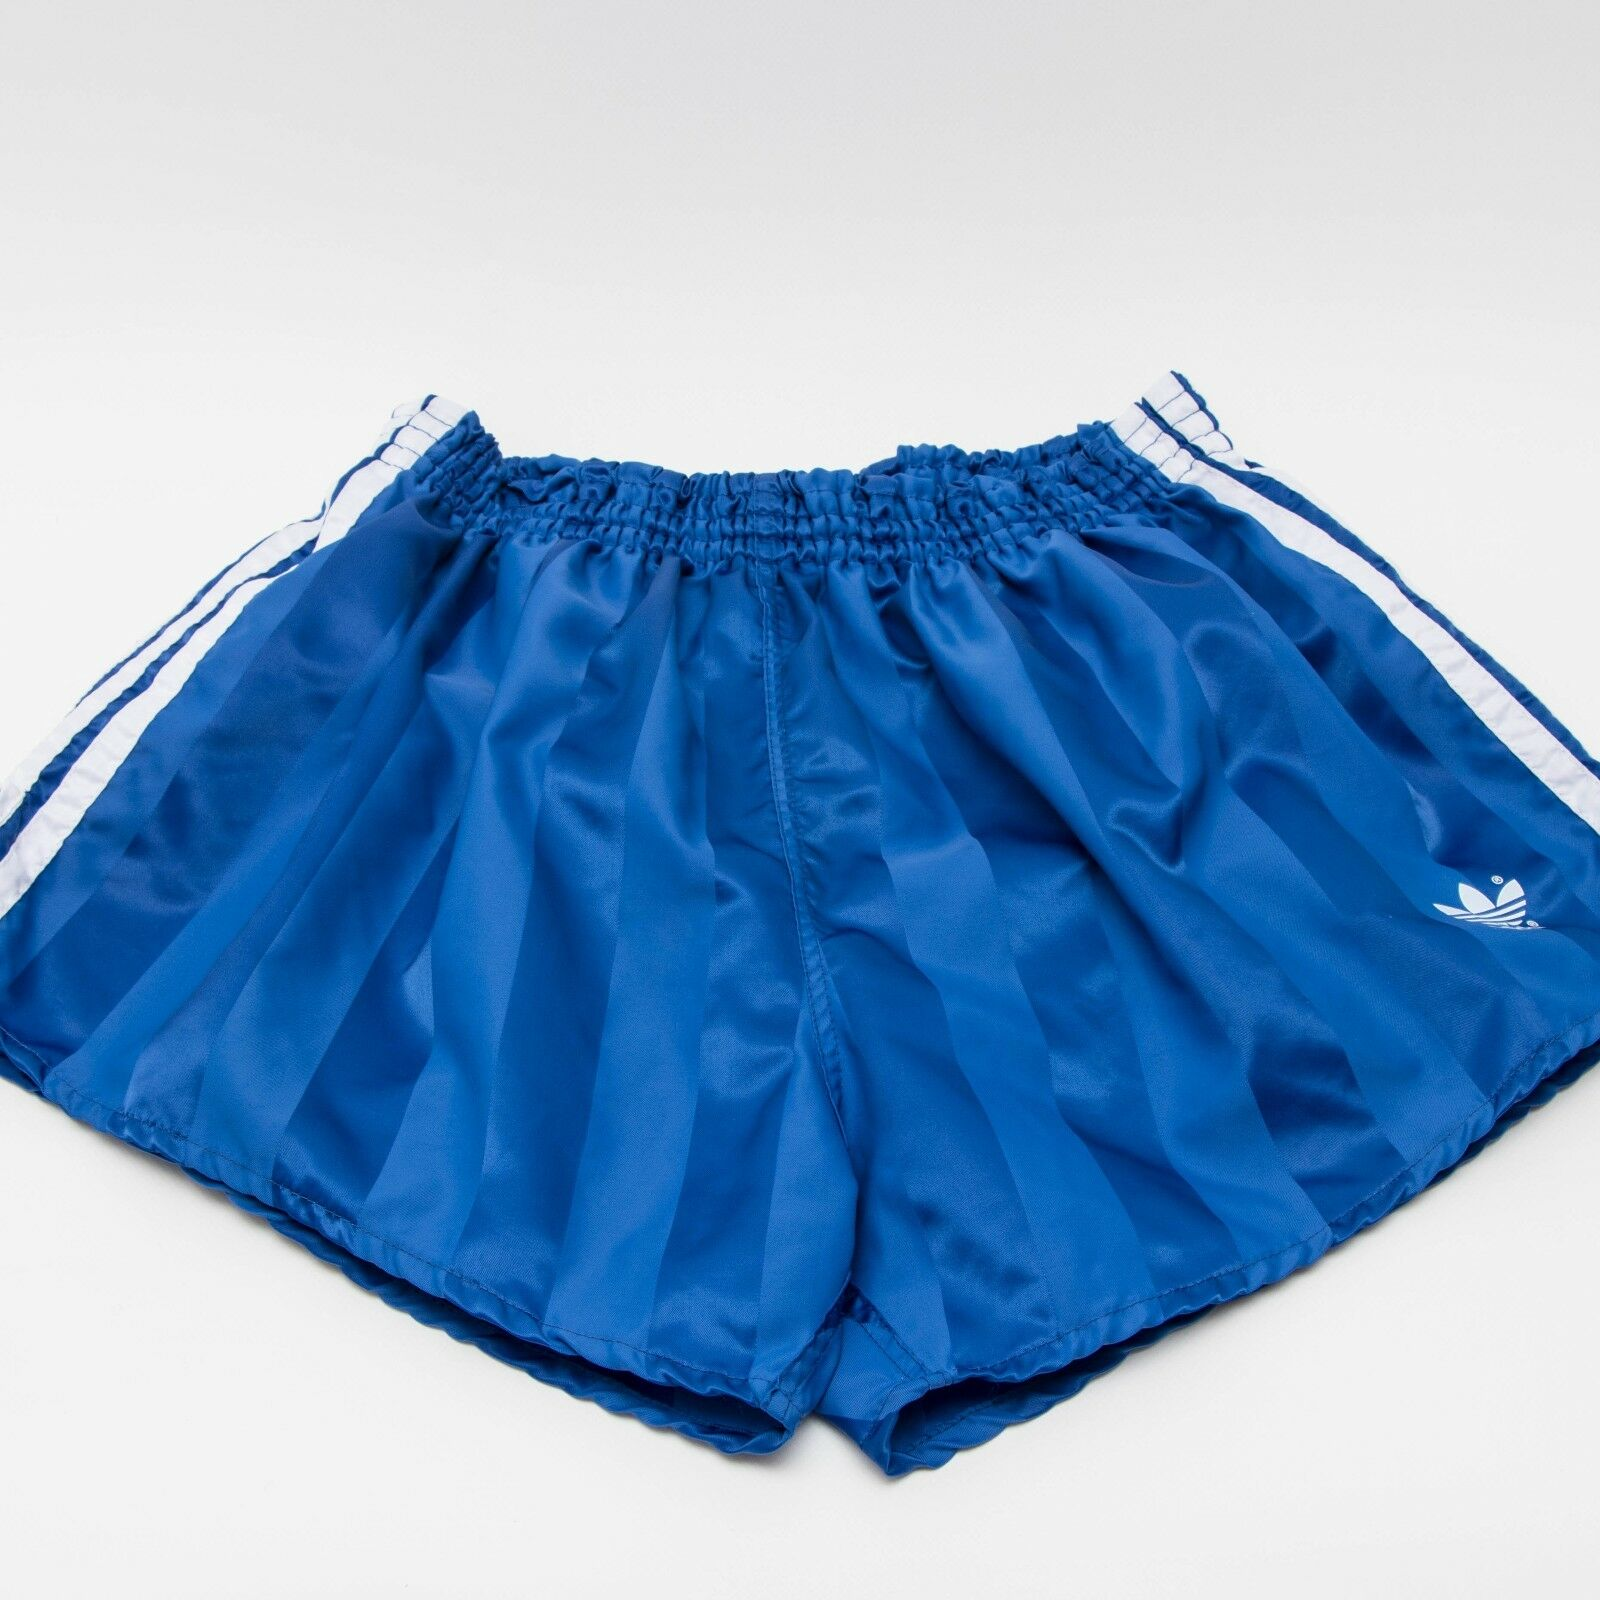 ADIDAS Glanz Nylon Vintage Shorts - Made in W.Germany - blau  Gr. D7 (1431)  | Fuxin